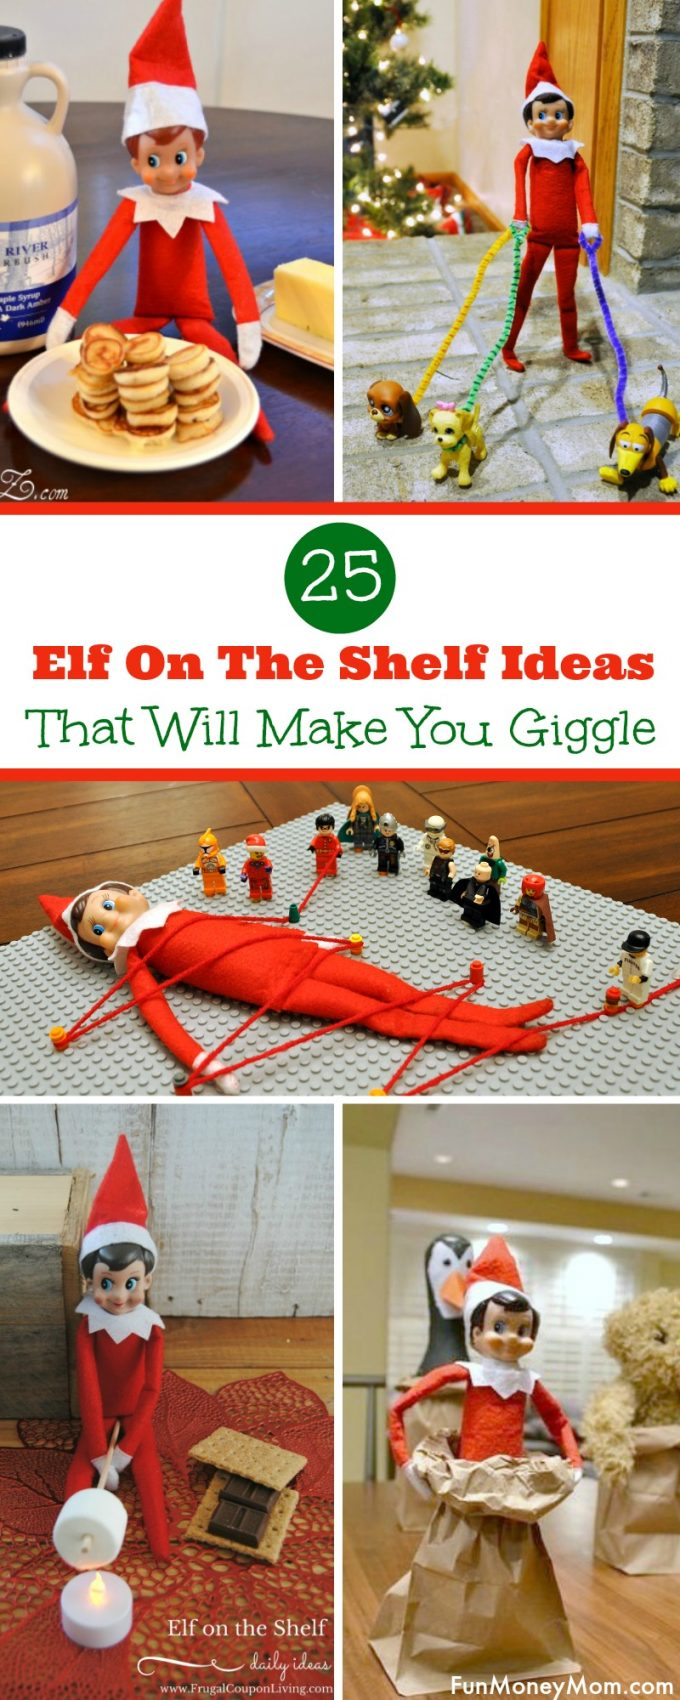 Elf On The Shelf Ideas That Will Make You Giggle Fun Money Mom